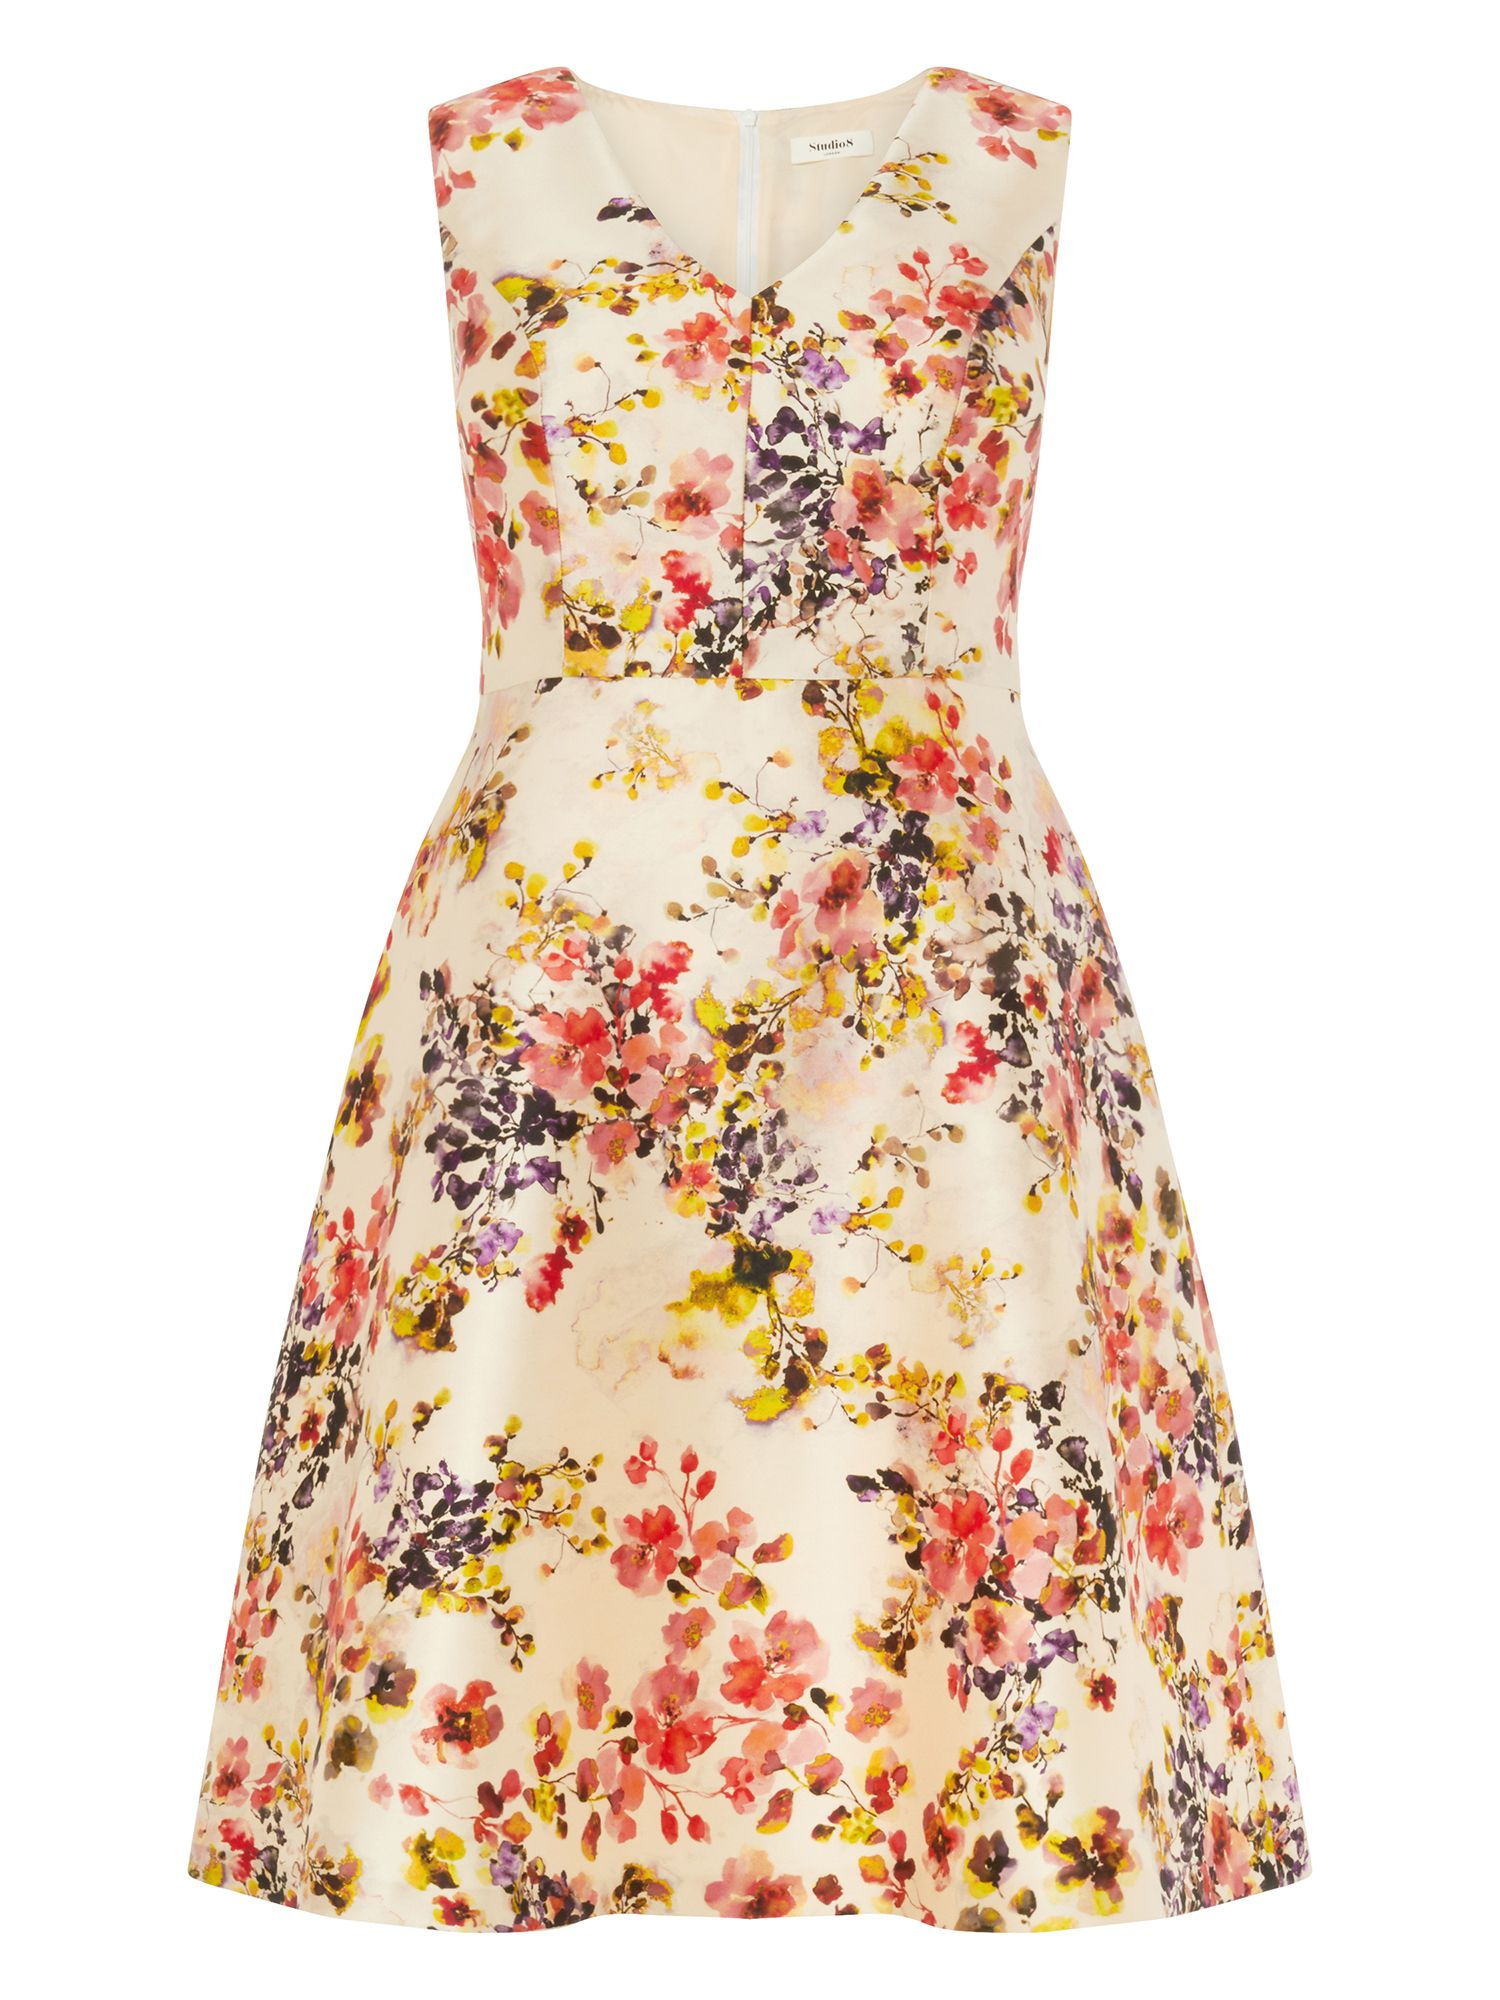 Studio 8 Jennifer Dress, Multi-Coloured